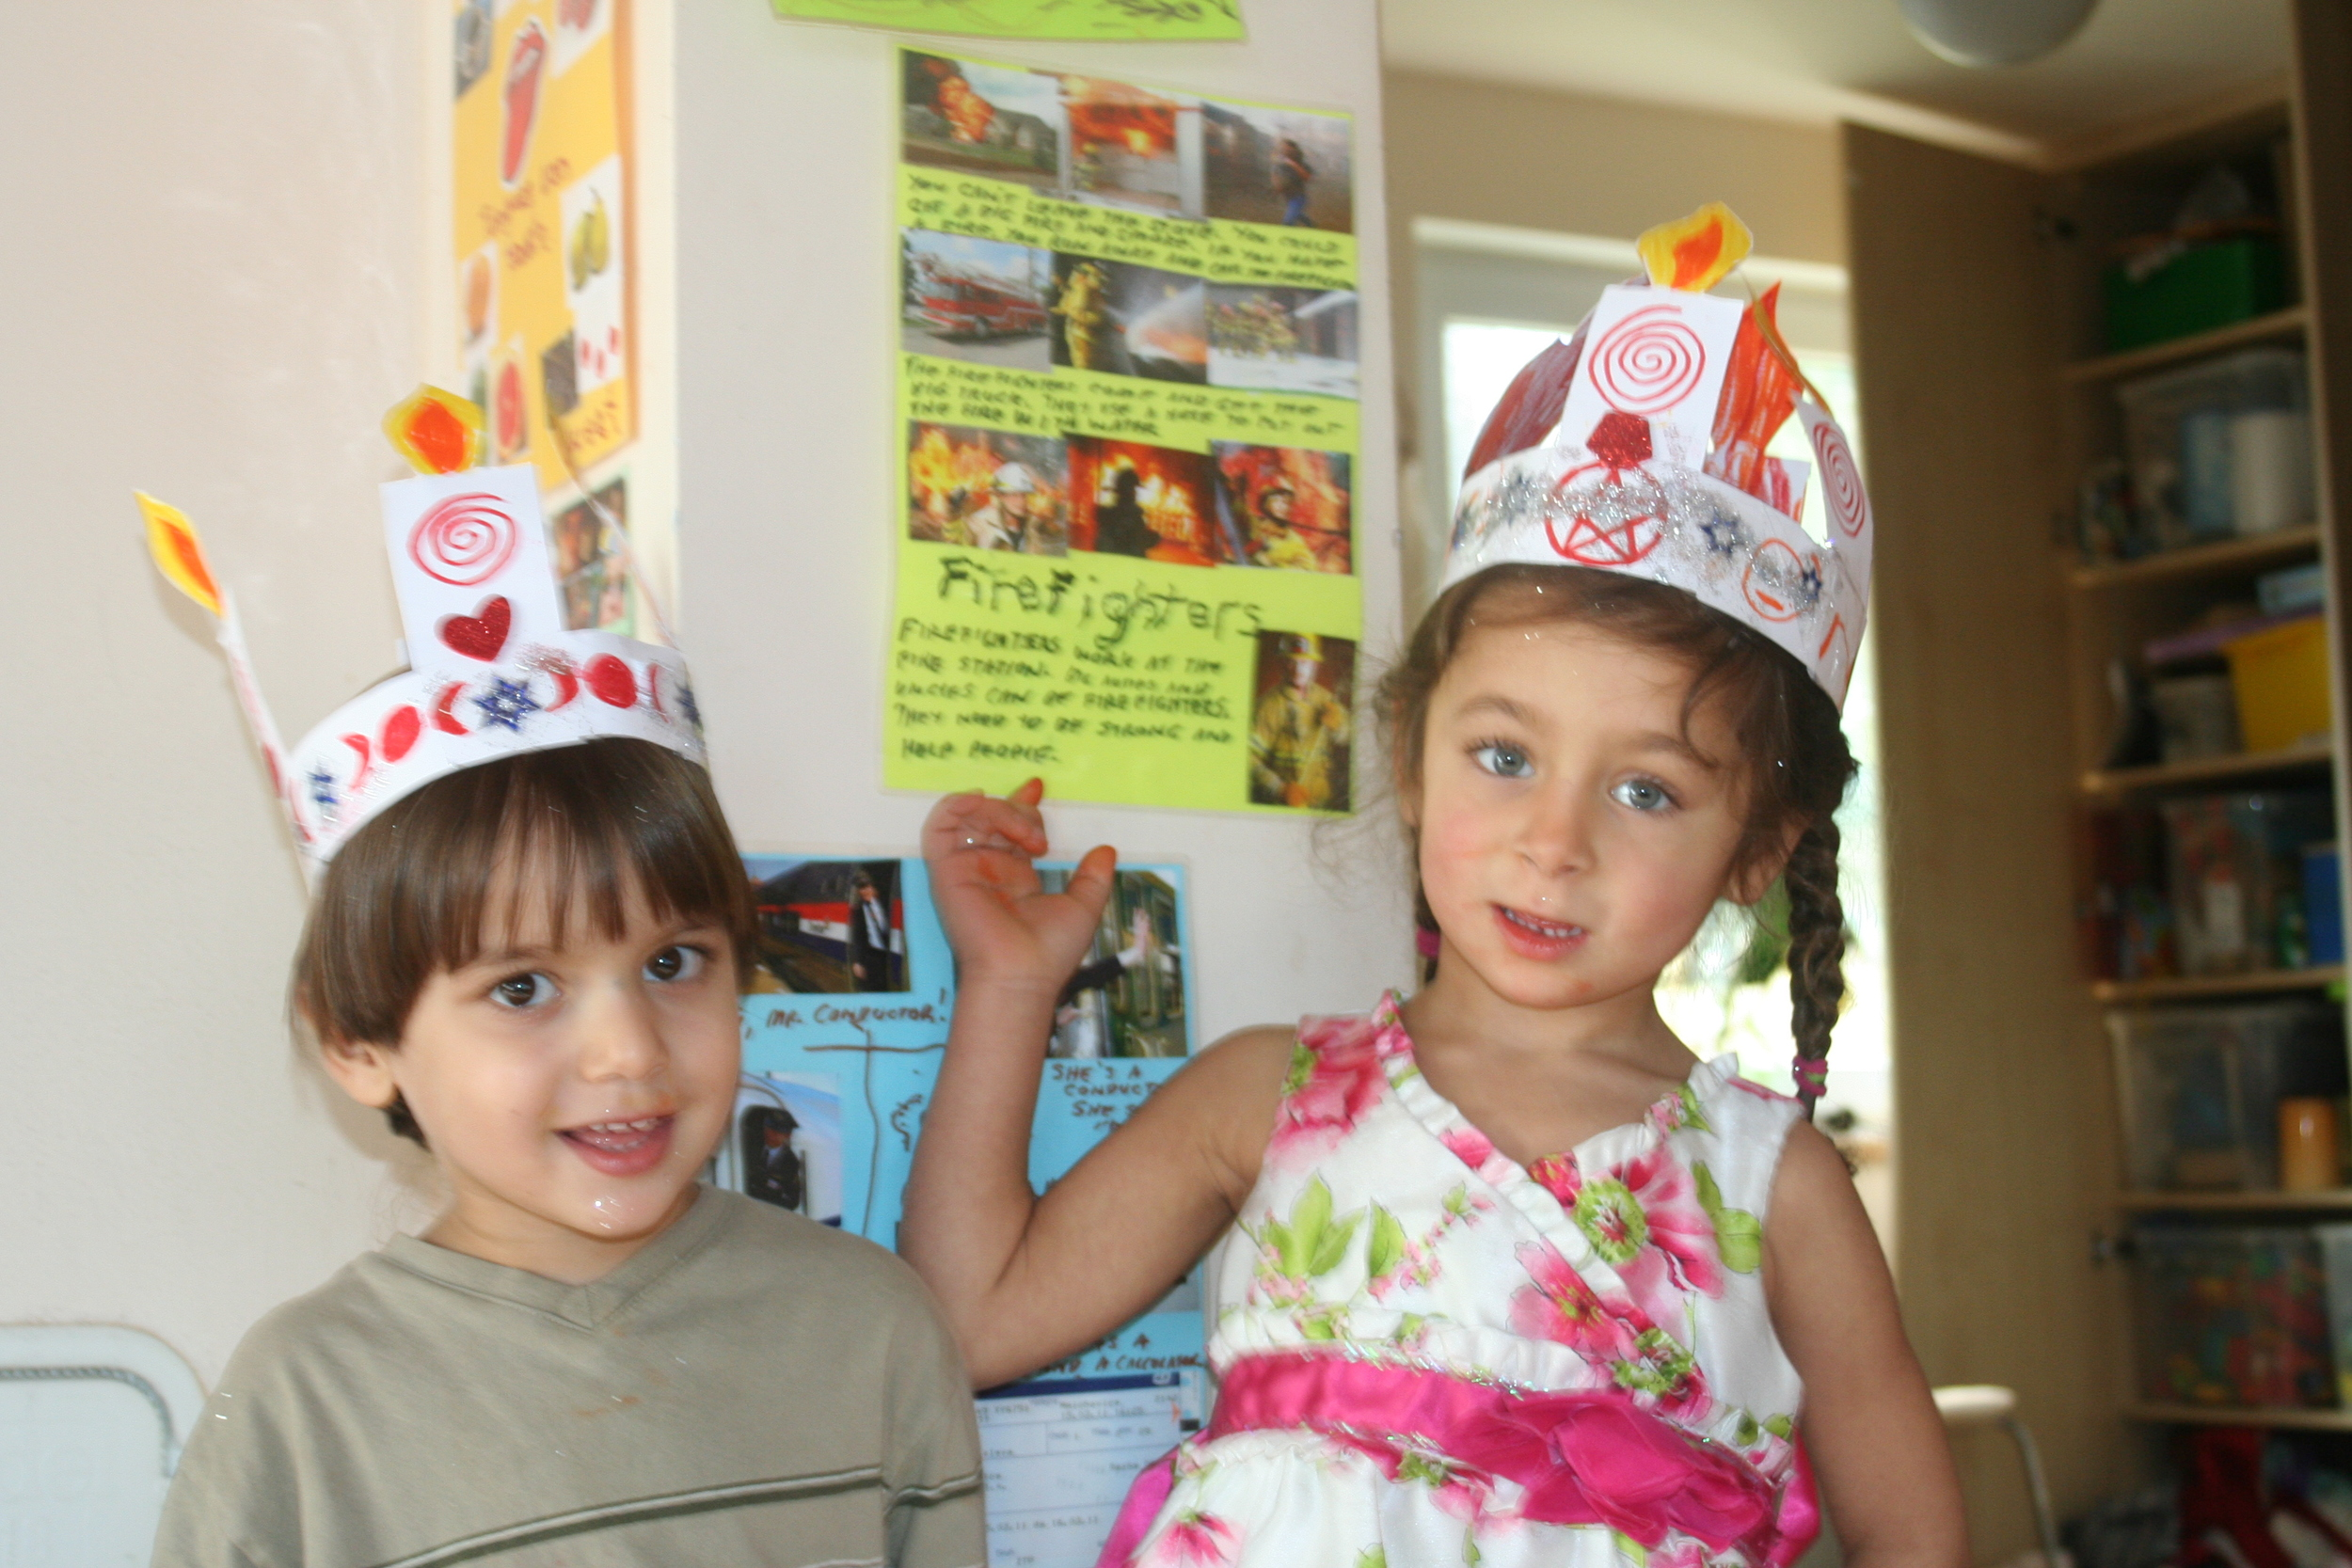 Kids with Imbolc crowns demonstrating fire protection knowledge